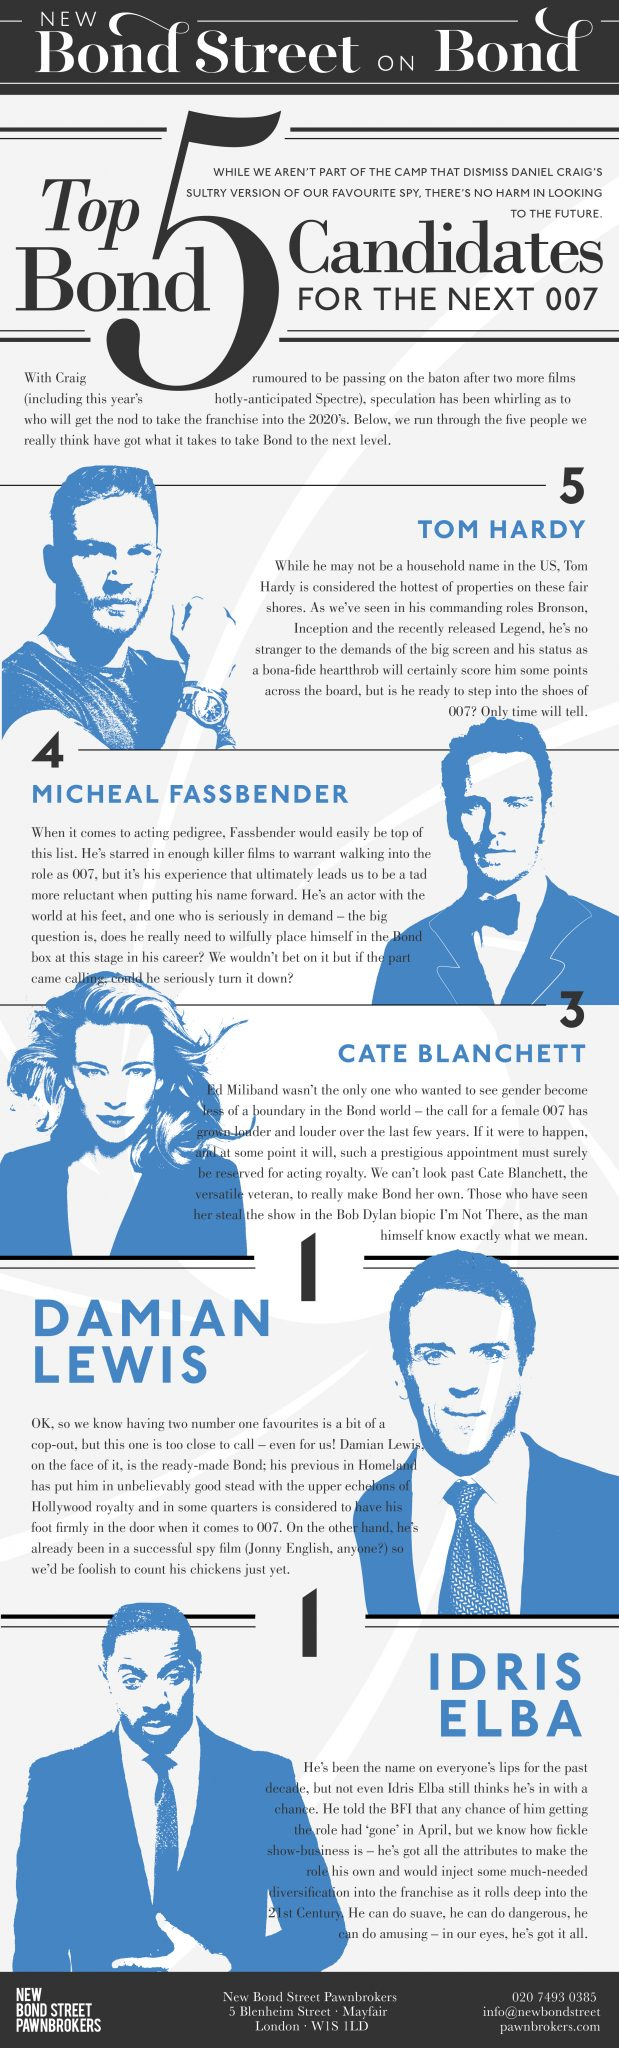 Top 5 Candidates For The Next James Bond - Infographic